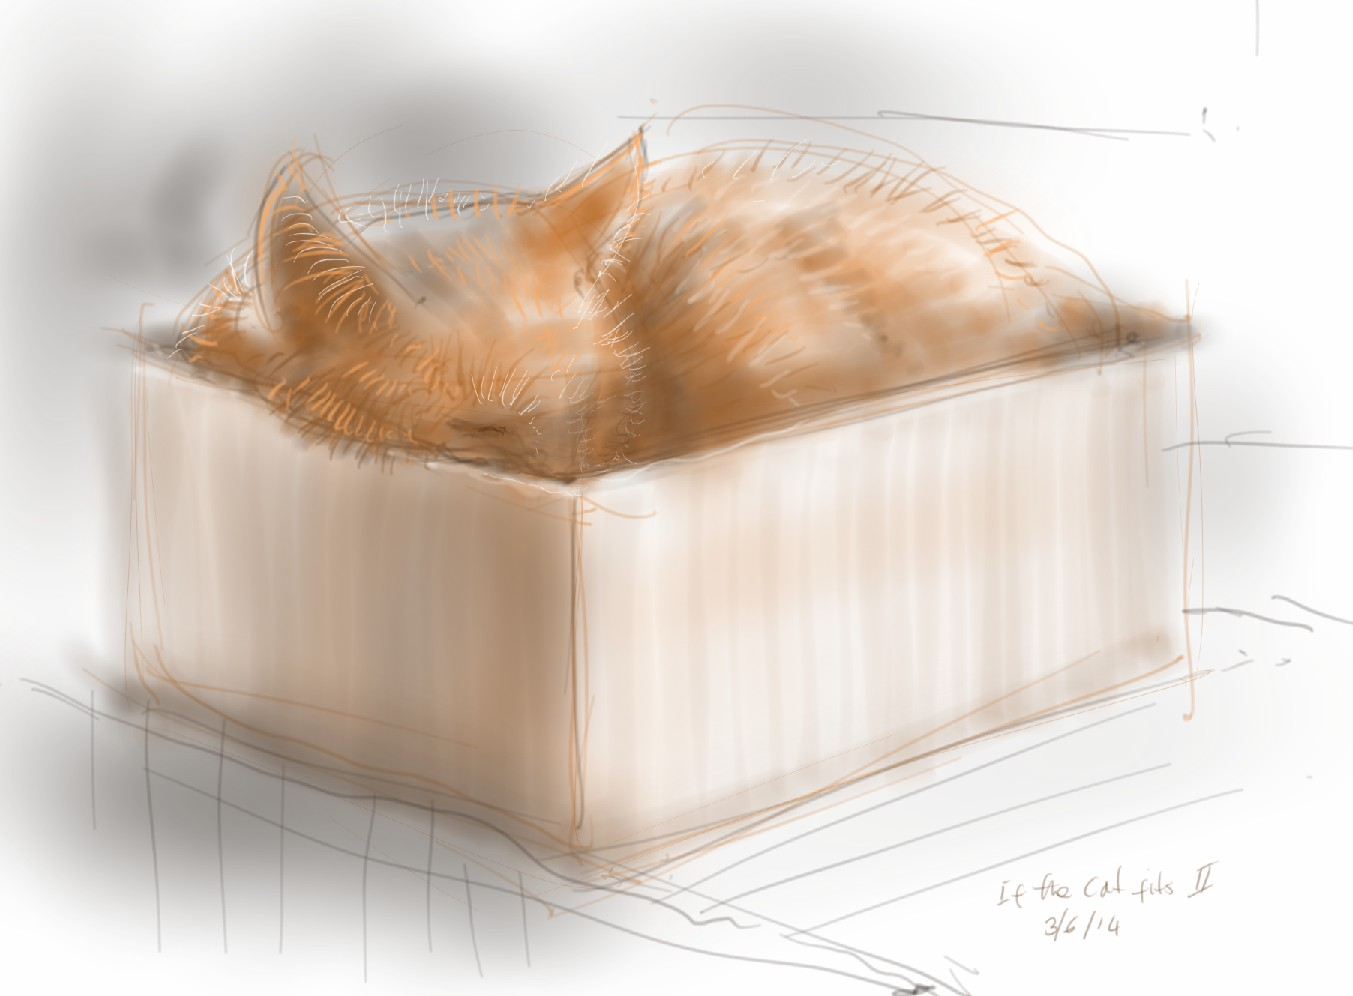 If the cat fits 2